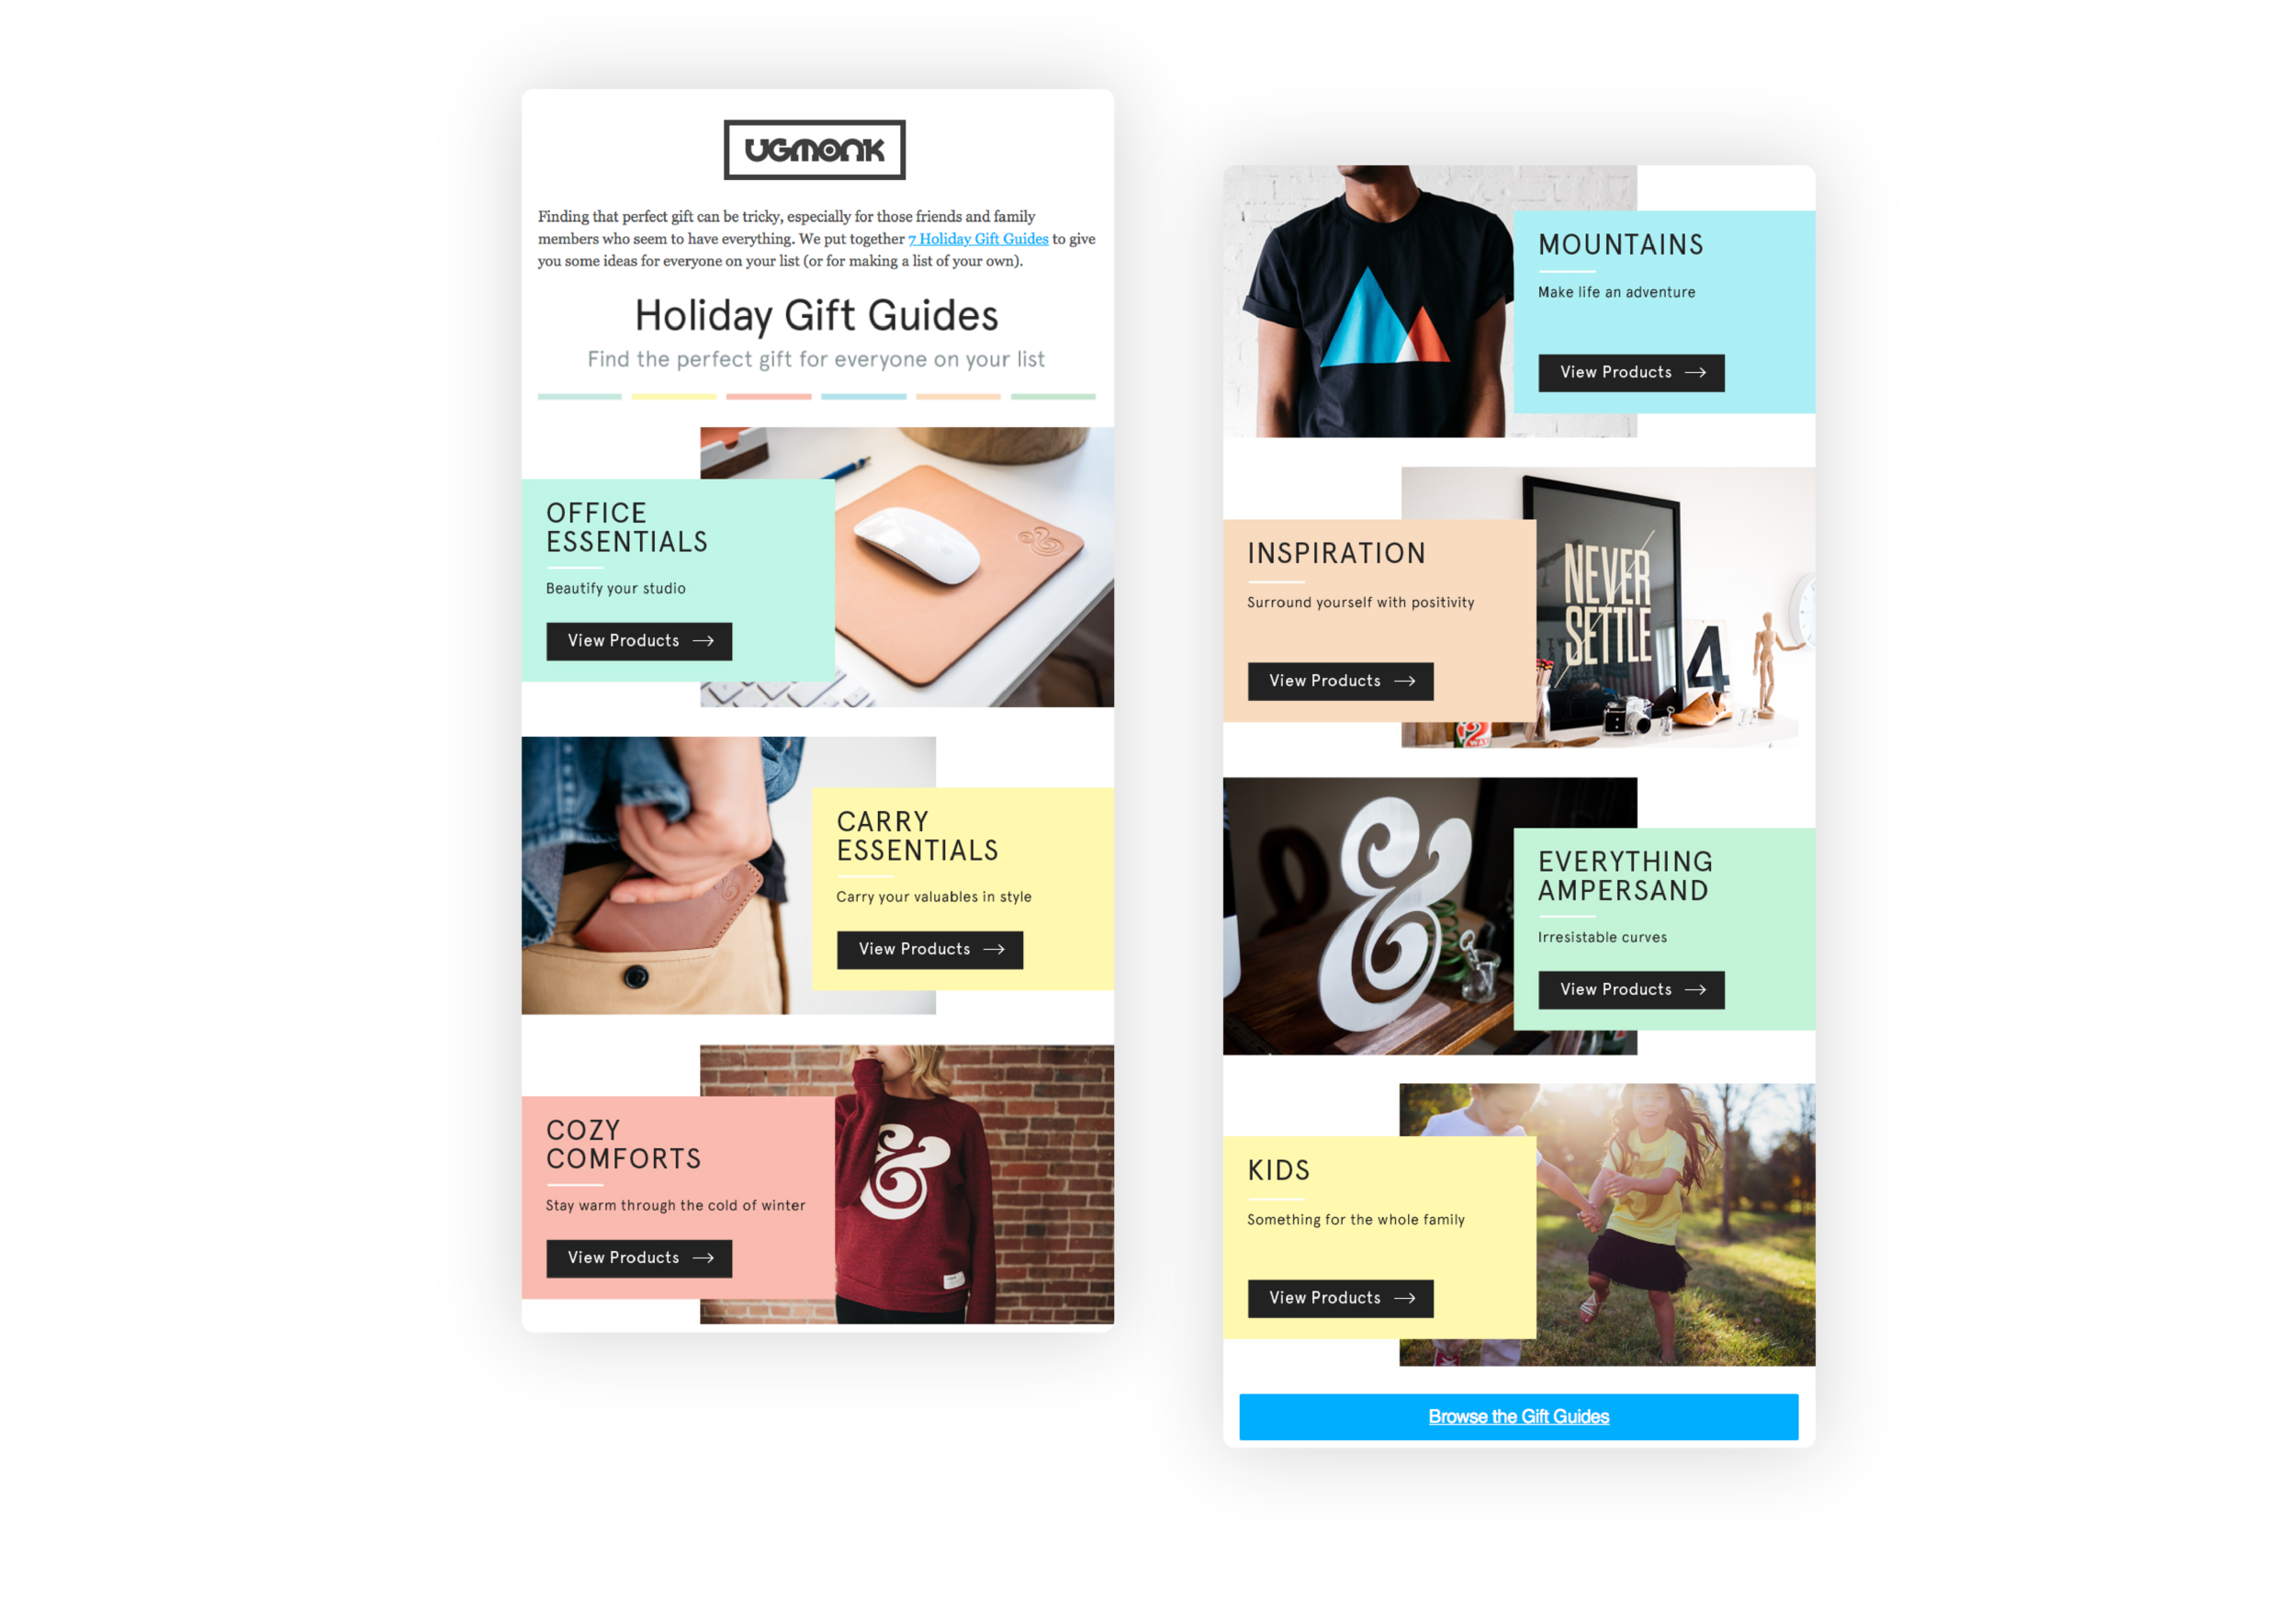 UGMONK's holiday gift guide